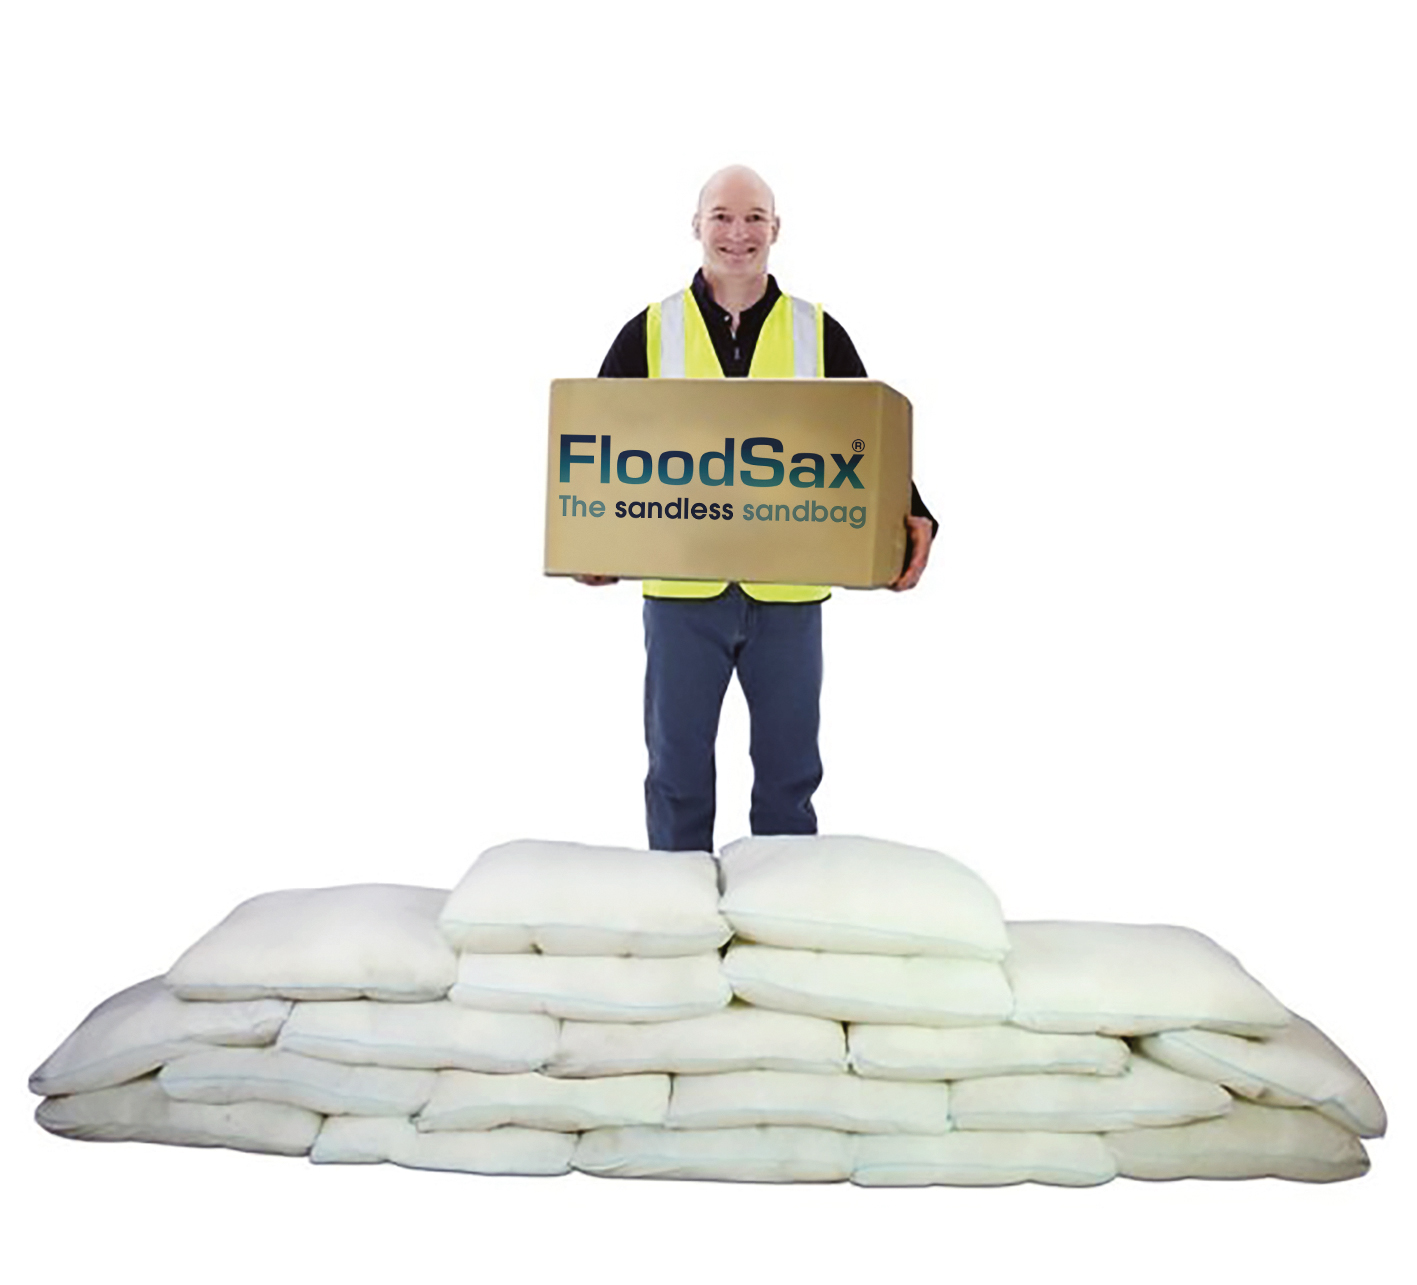 FloodSax sandless sandbags in box.jpg